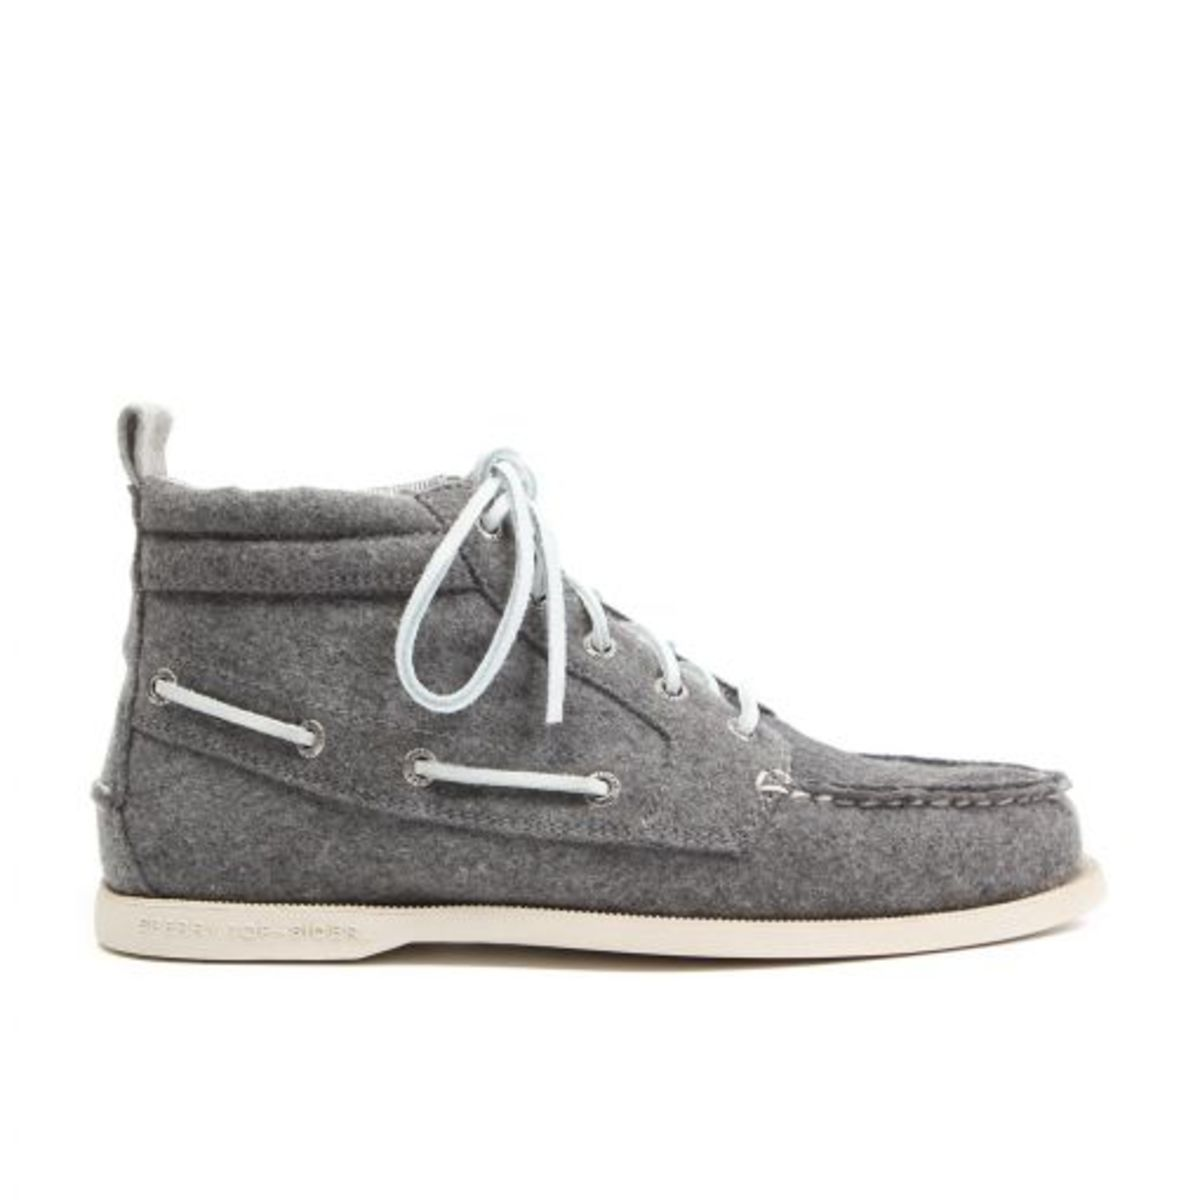 band_of_outsider_sperry_topsider_9